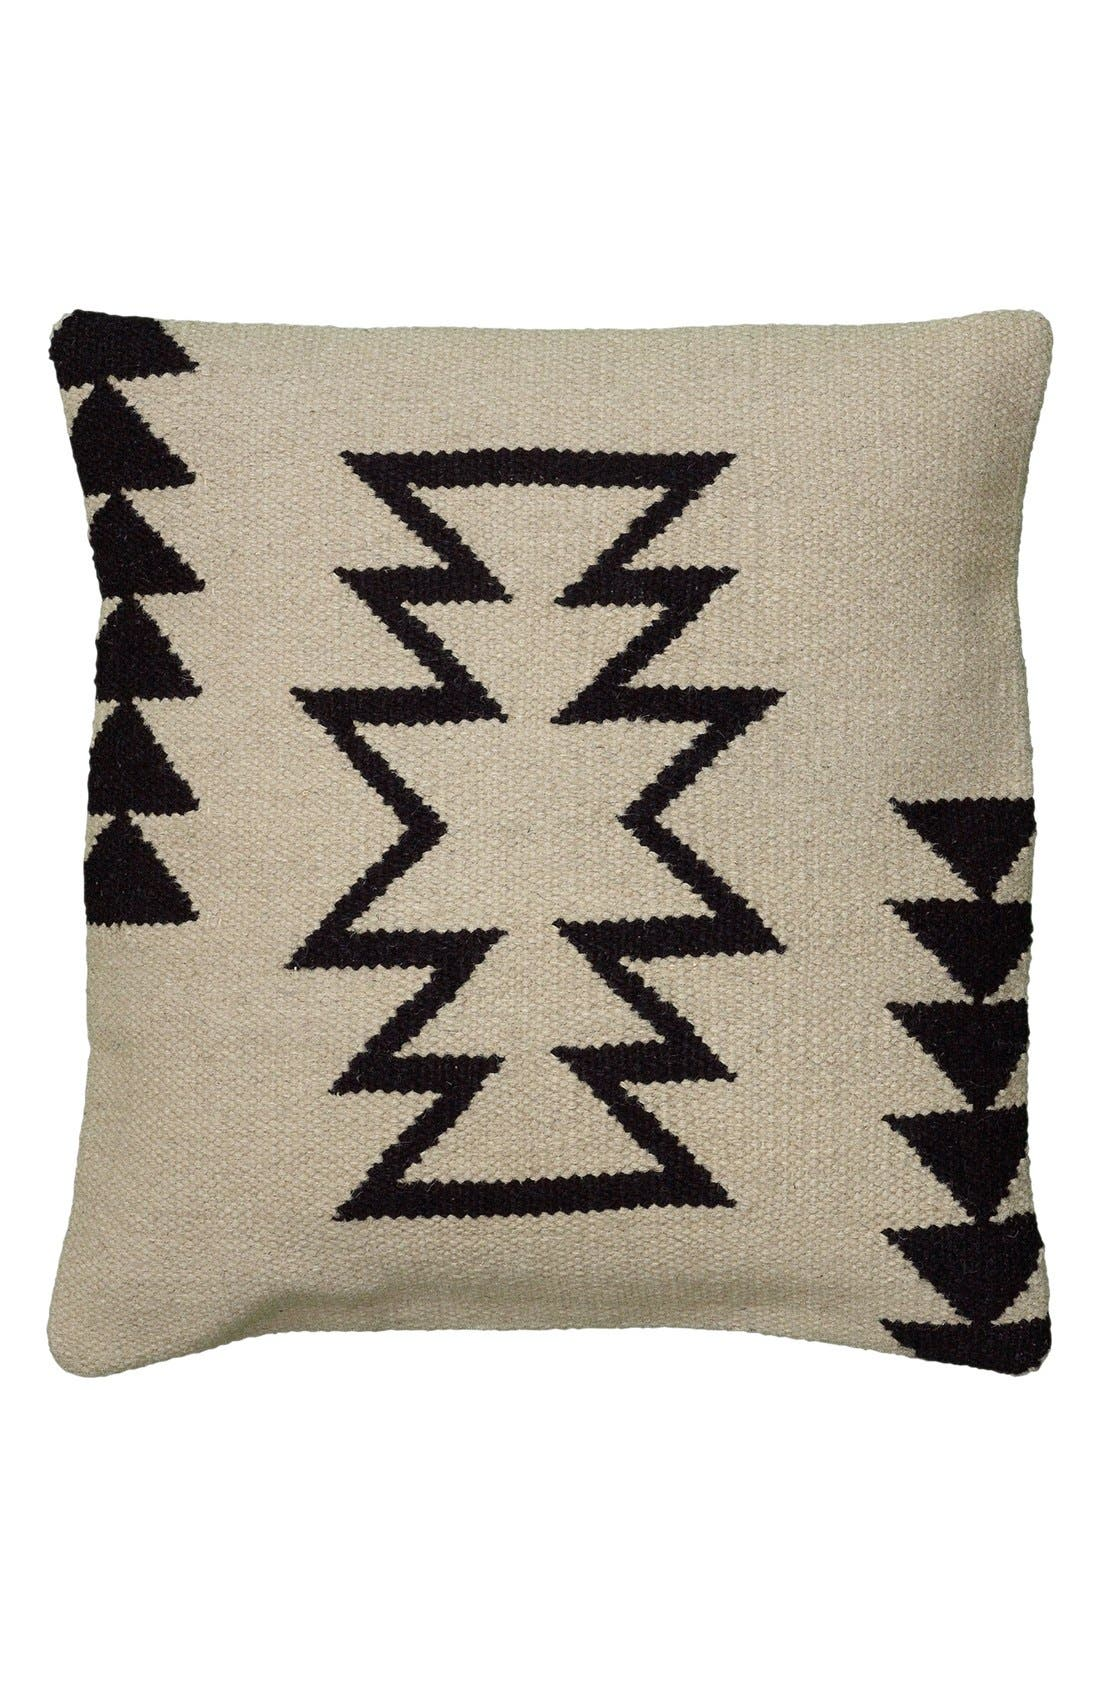 Alternate Image 1 Selected - Rizzy Home 'Phoenix' Pillow